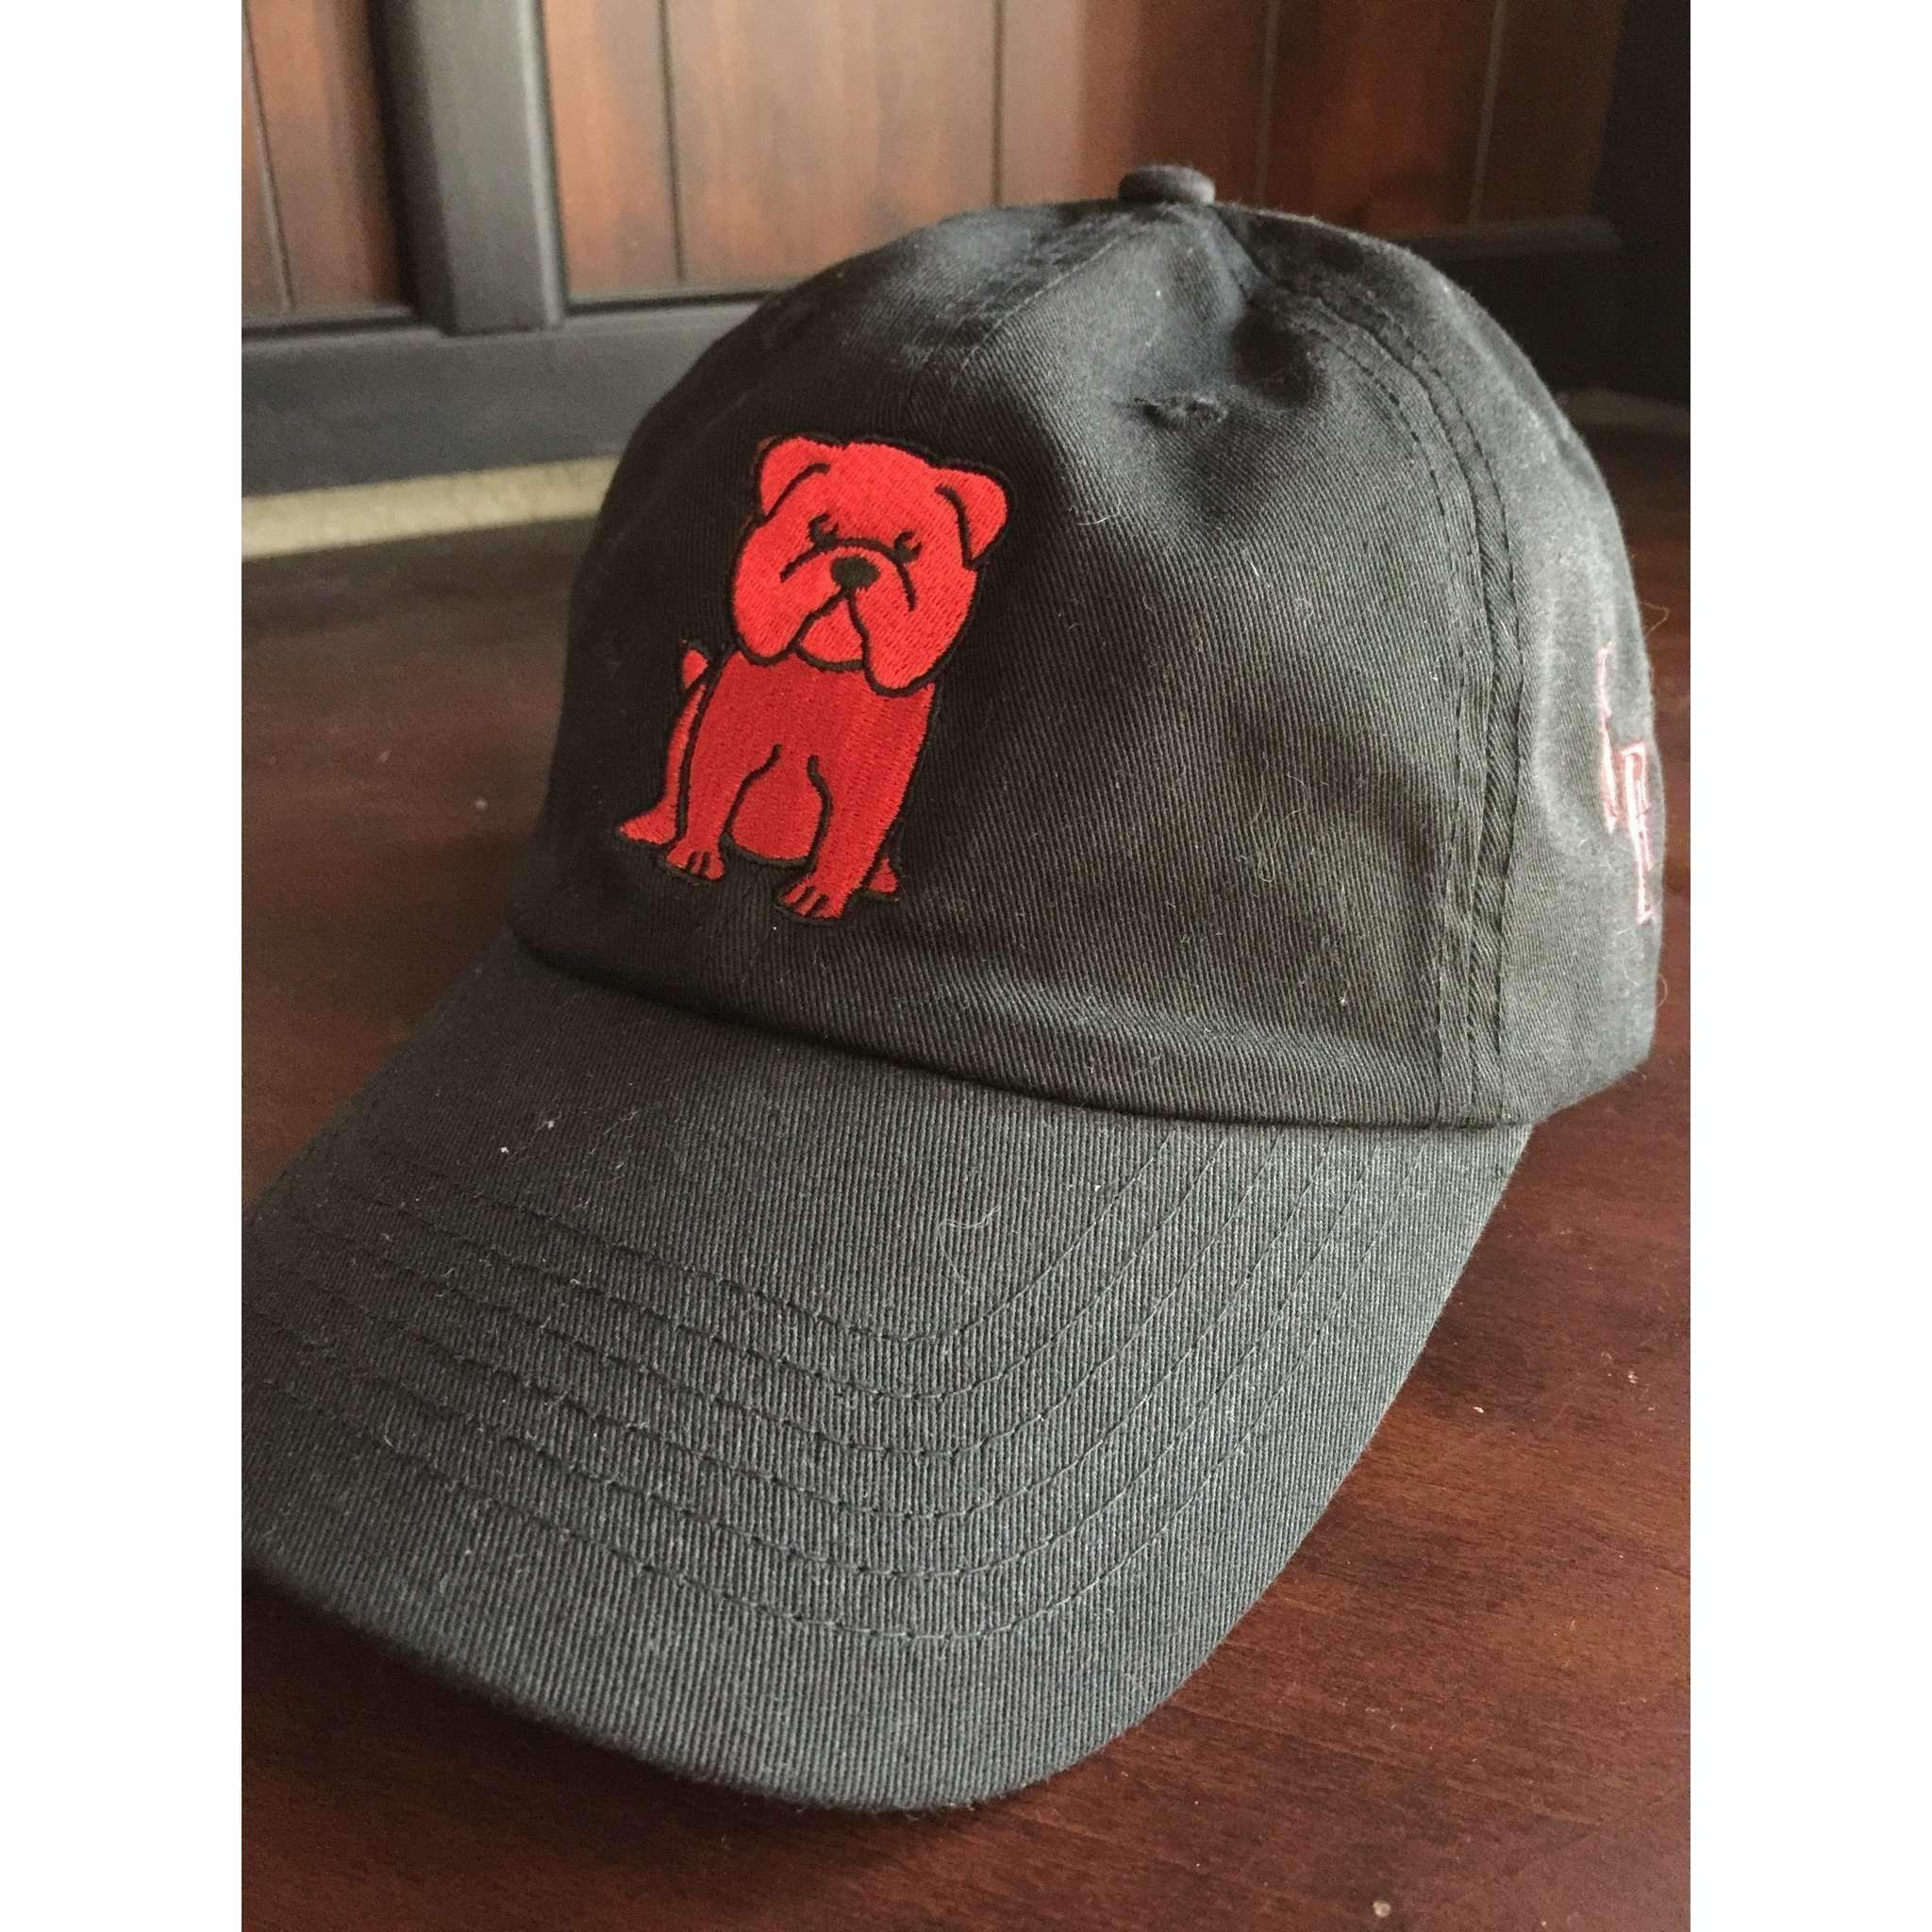 hat with an english bulldog on it, english bulldog lover, english bulldog lover hat, english bulldog lover hat, english bulldog lover hat, english bulldog on a hat, english bulldog on a hat, gift for english bulldog lover, gift for english bulldog owner, hat for english bulldog owner, hat for english bulldog owner